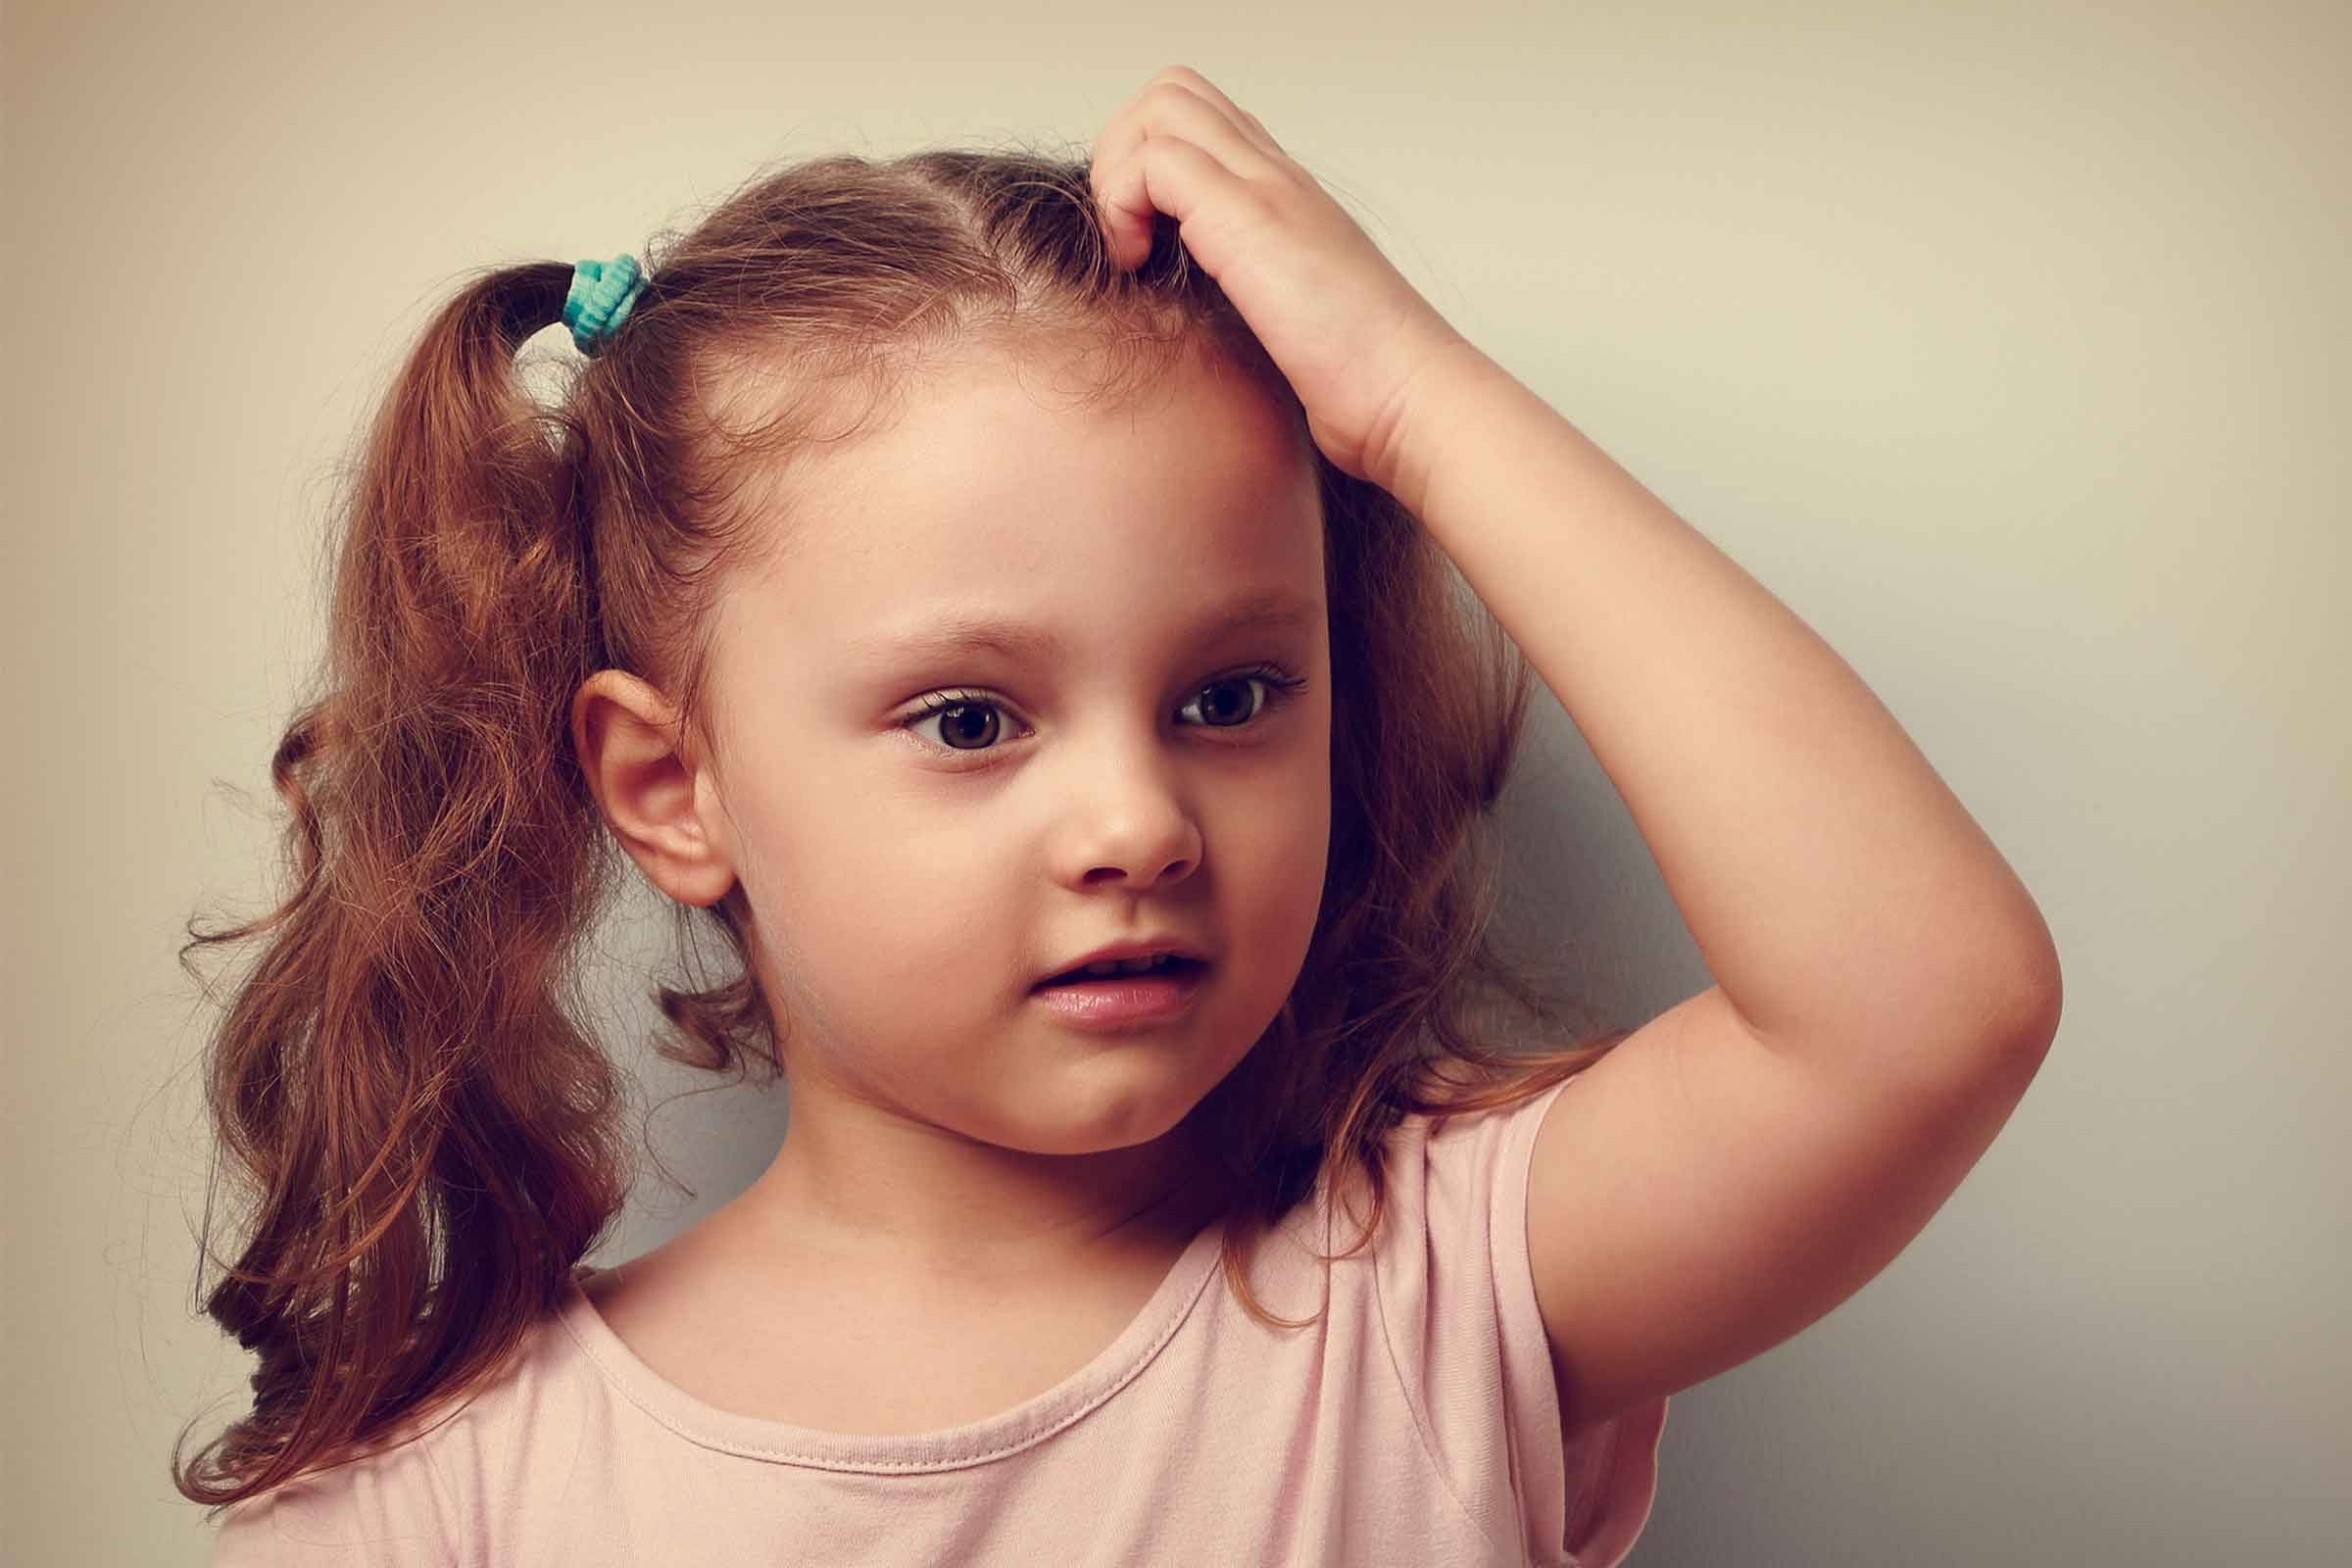 Head Lice Symptoms 7 Things To Look For Reader S Digest